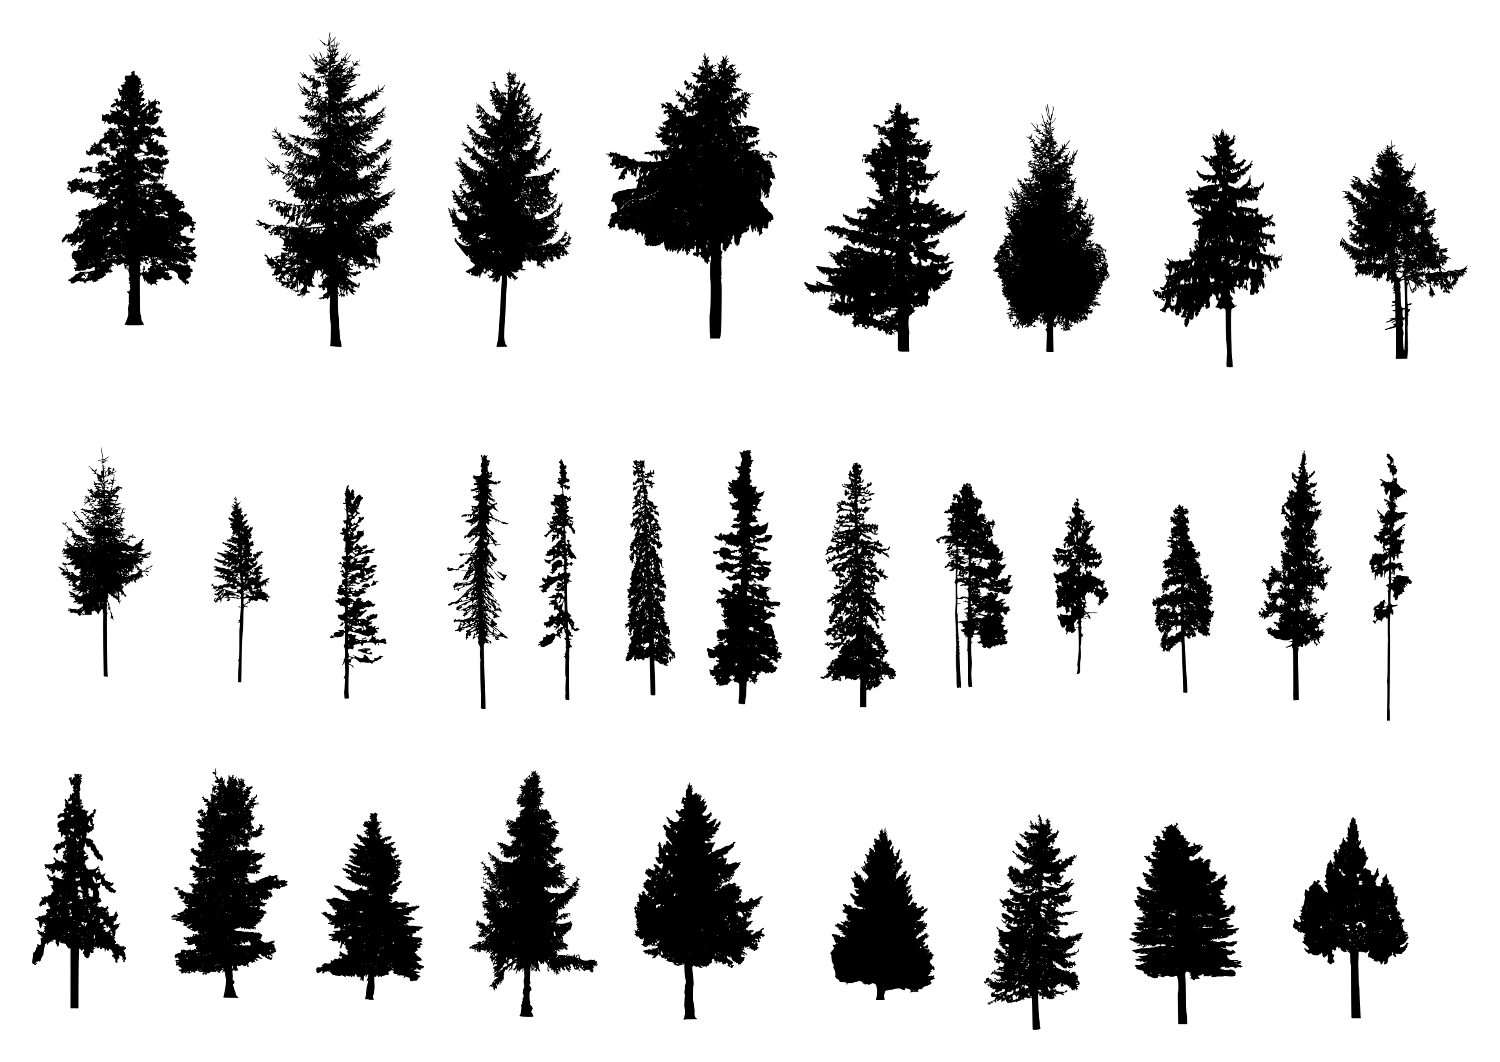 Resolution 352 624 Px File Format Png File Size 22 42 Kb Free Download Pine Tree Silhouette 1 Png Re Pine Tree Silhouette Tree Silhouette Silhouette Png